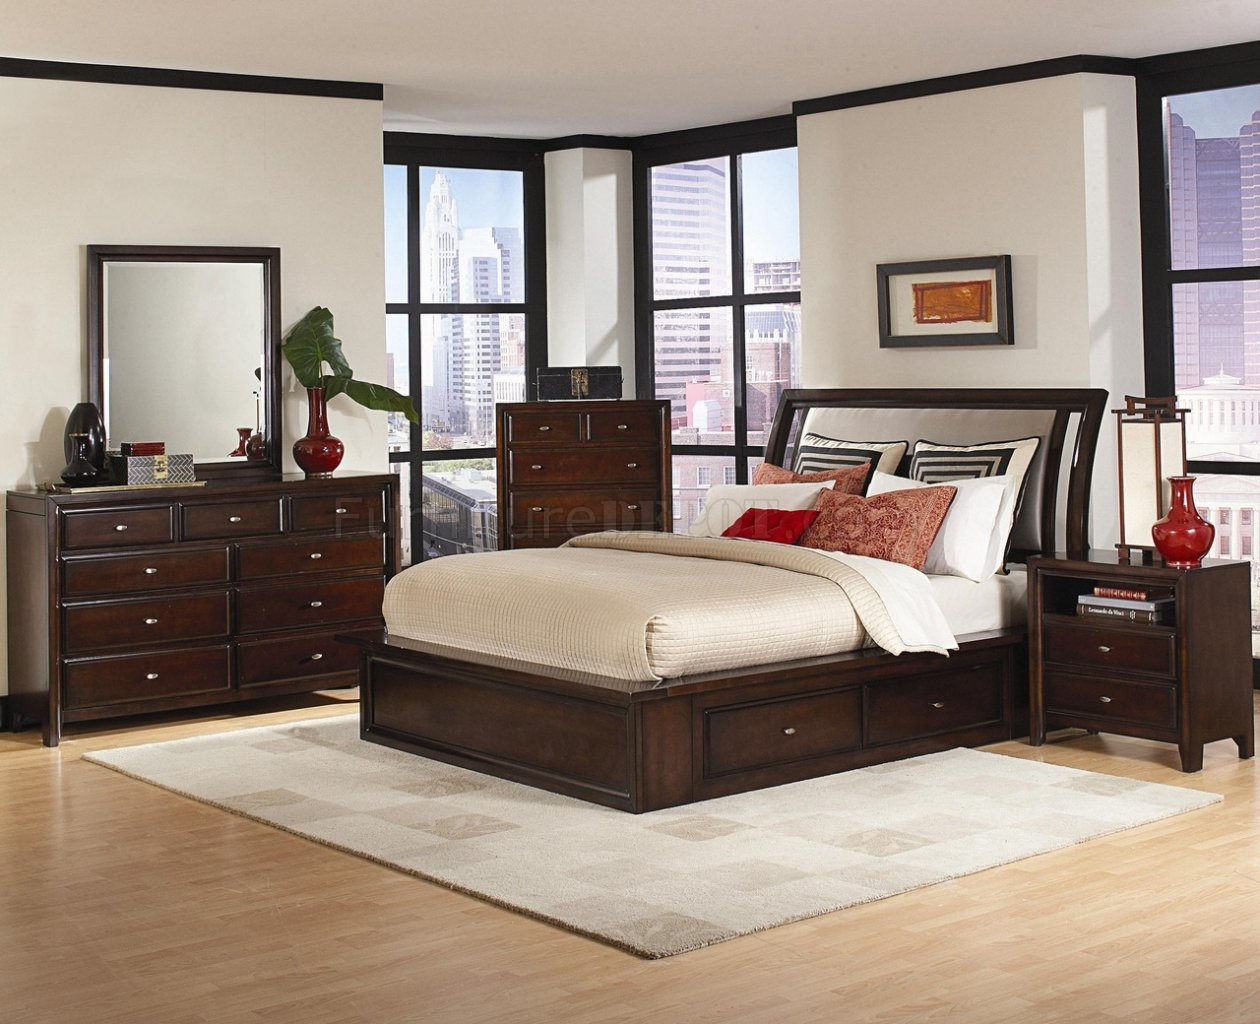 Distressed Cherry Finish Contemporary Bedroom WStorage Bed